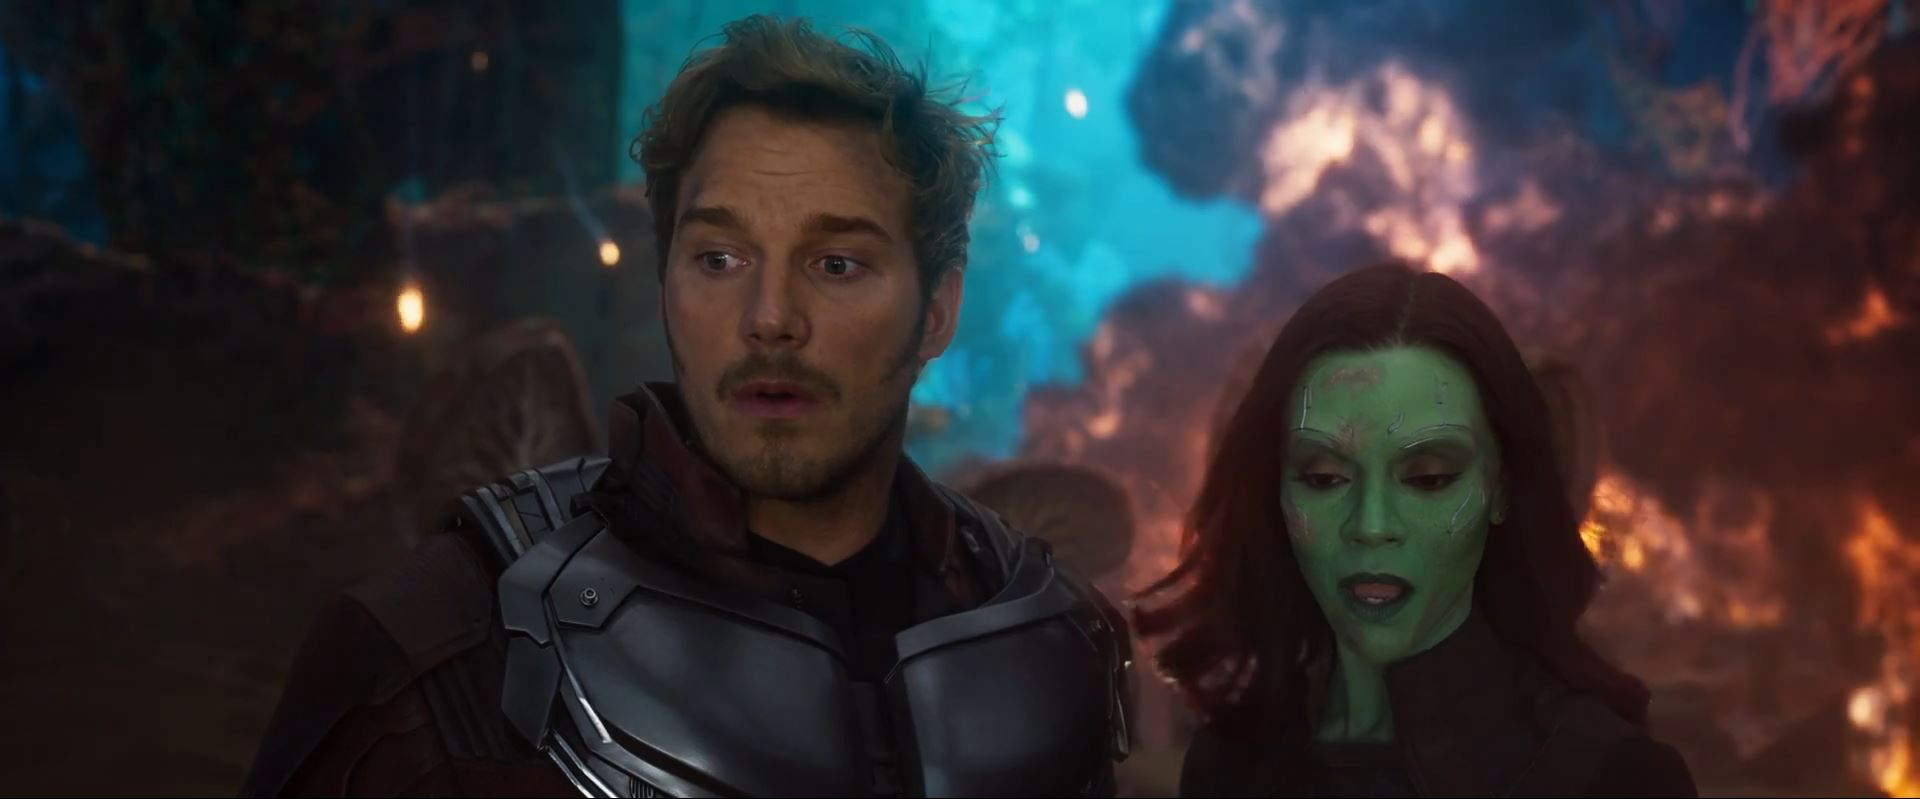 Guardians of the Galaxy Vol. 2 - Star-Lord and Gamora - Super Bowl Trailers